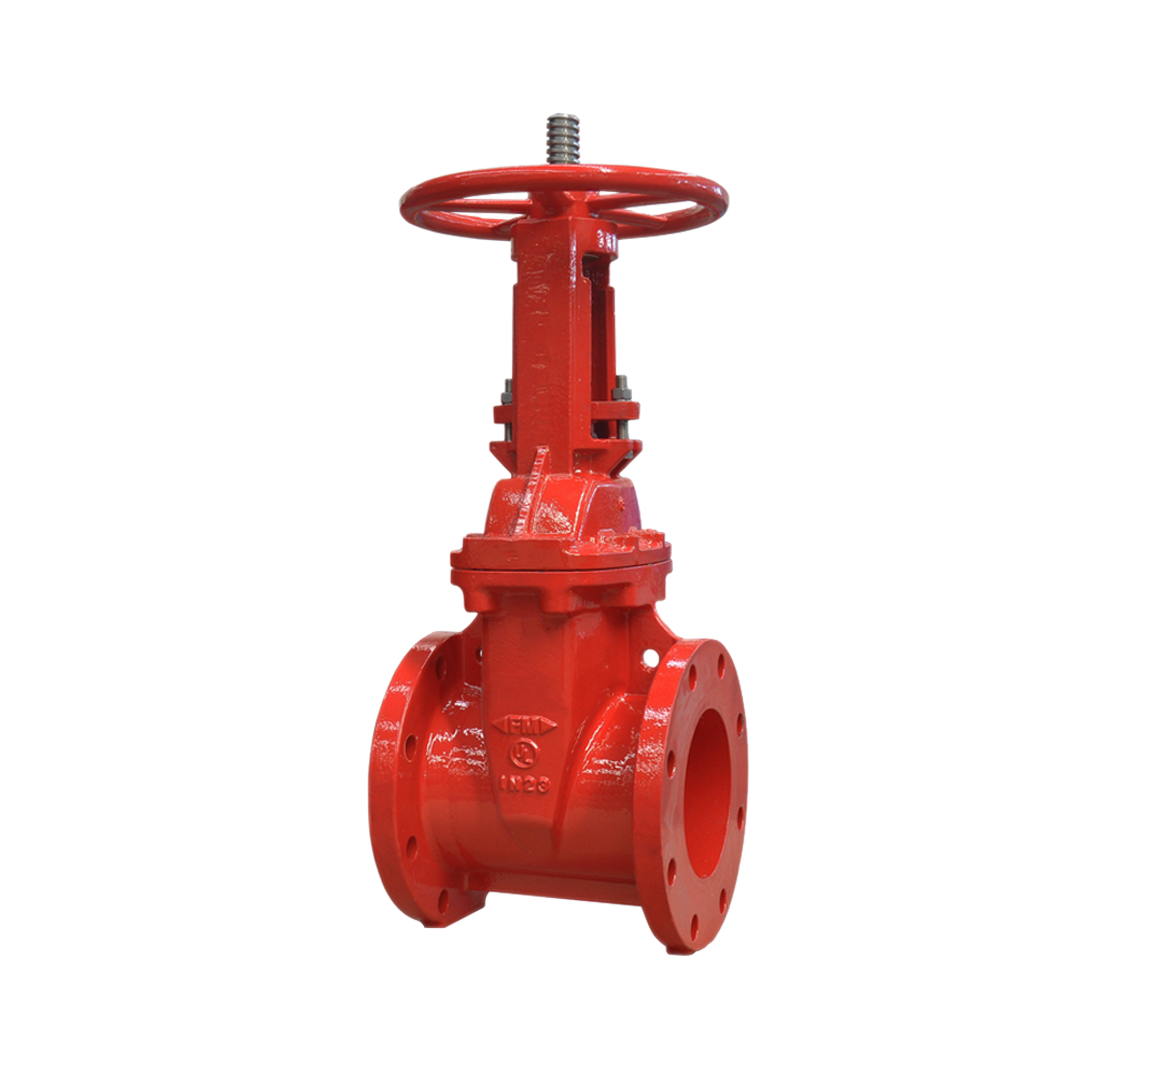 Connect Wired Ir Beam To Gsm Alarm System further Winter Maintenance On Your Wet Or Dry Sprinkler System also Osy Valve Diagram furthermore Simplex Wiring Diagram Of Fire additionally New Standard Fire Security Systems. on fire alarm tamper switch wiring